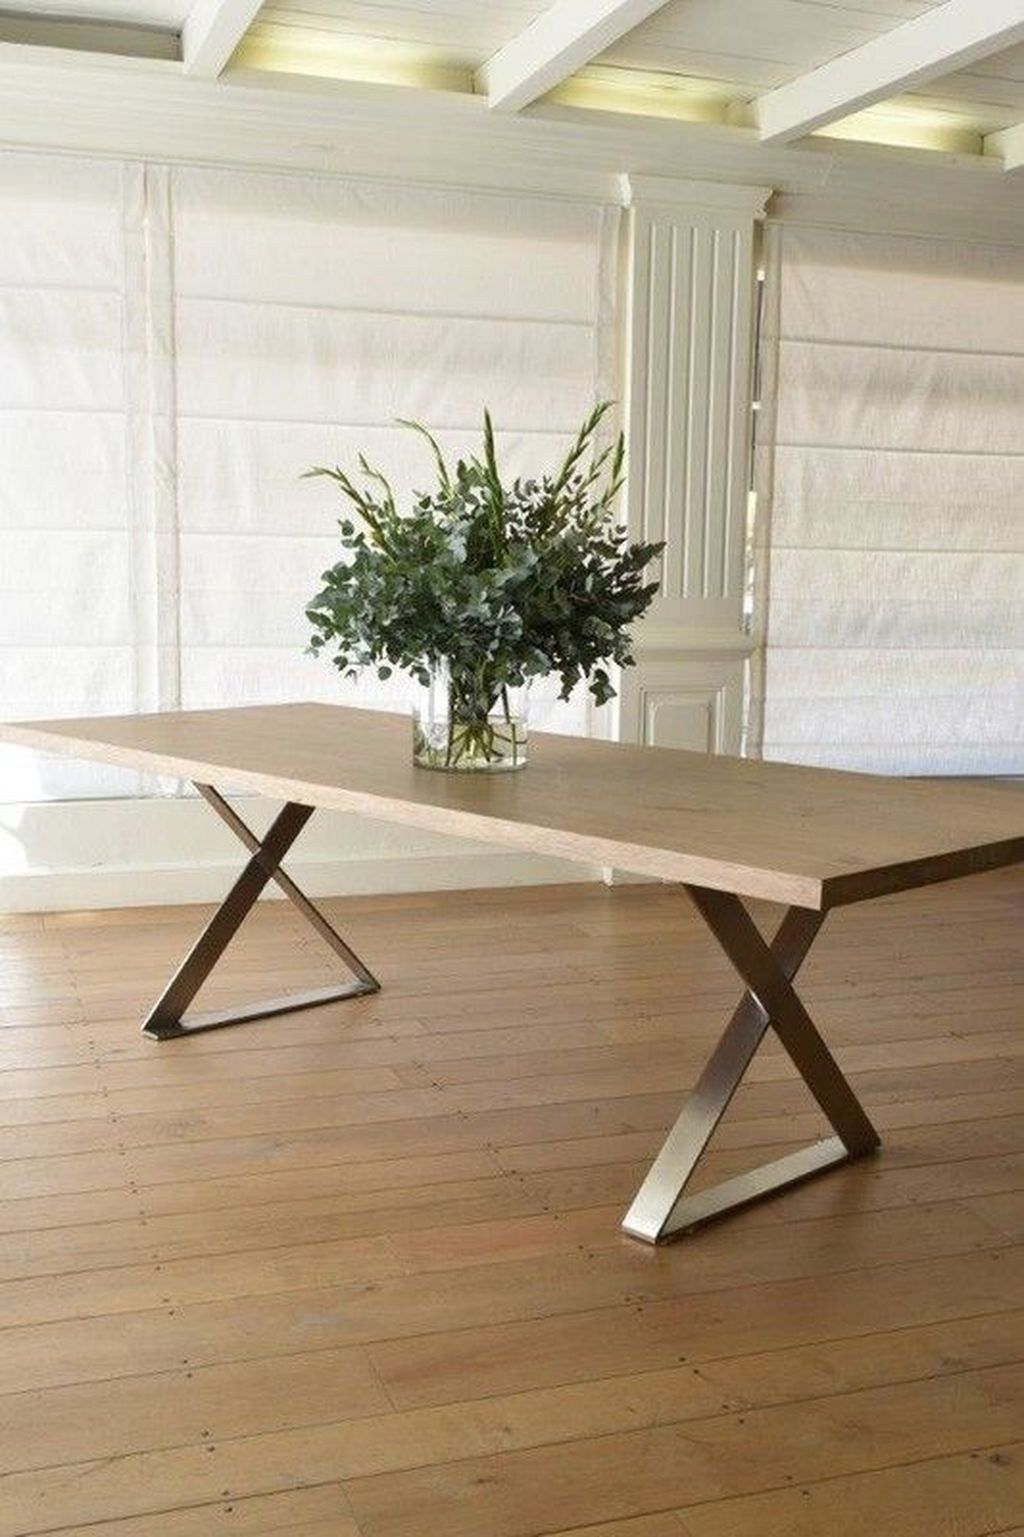 20 Trendy Dining Table Design Ideas That Looks Amazing In 2020